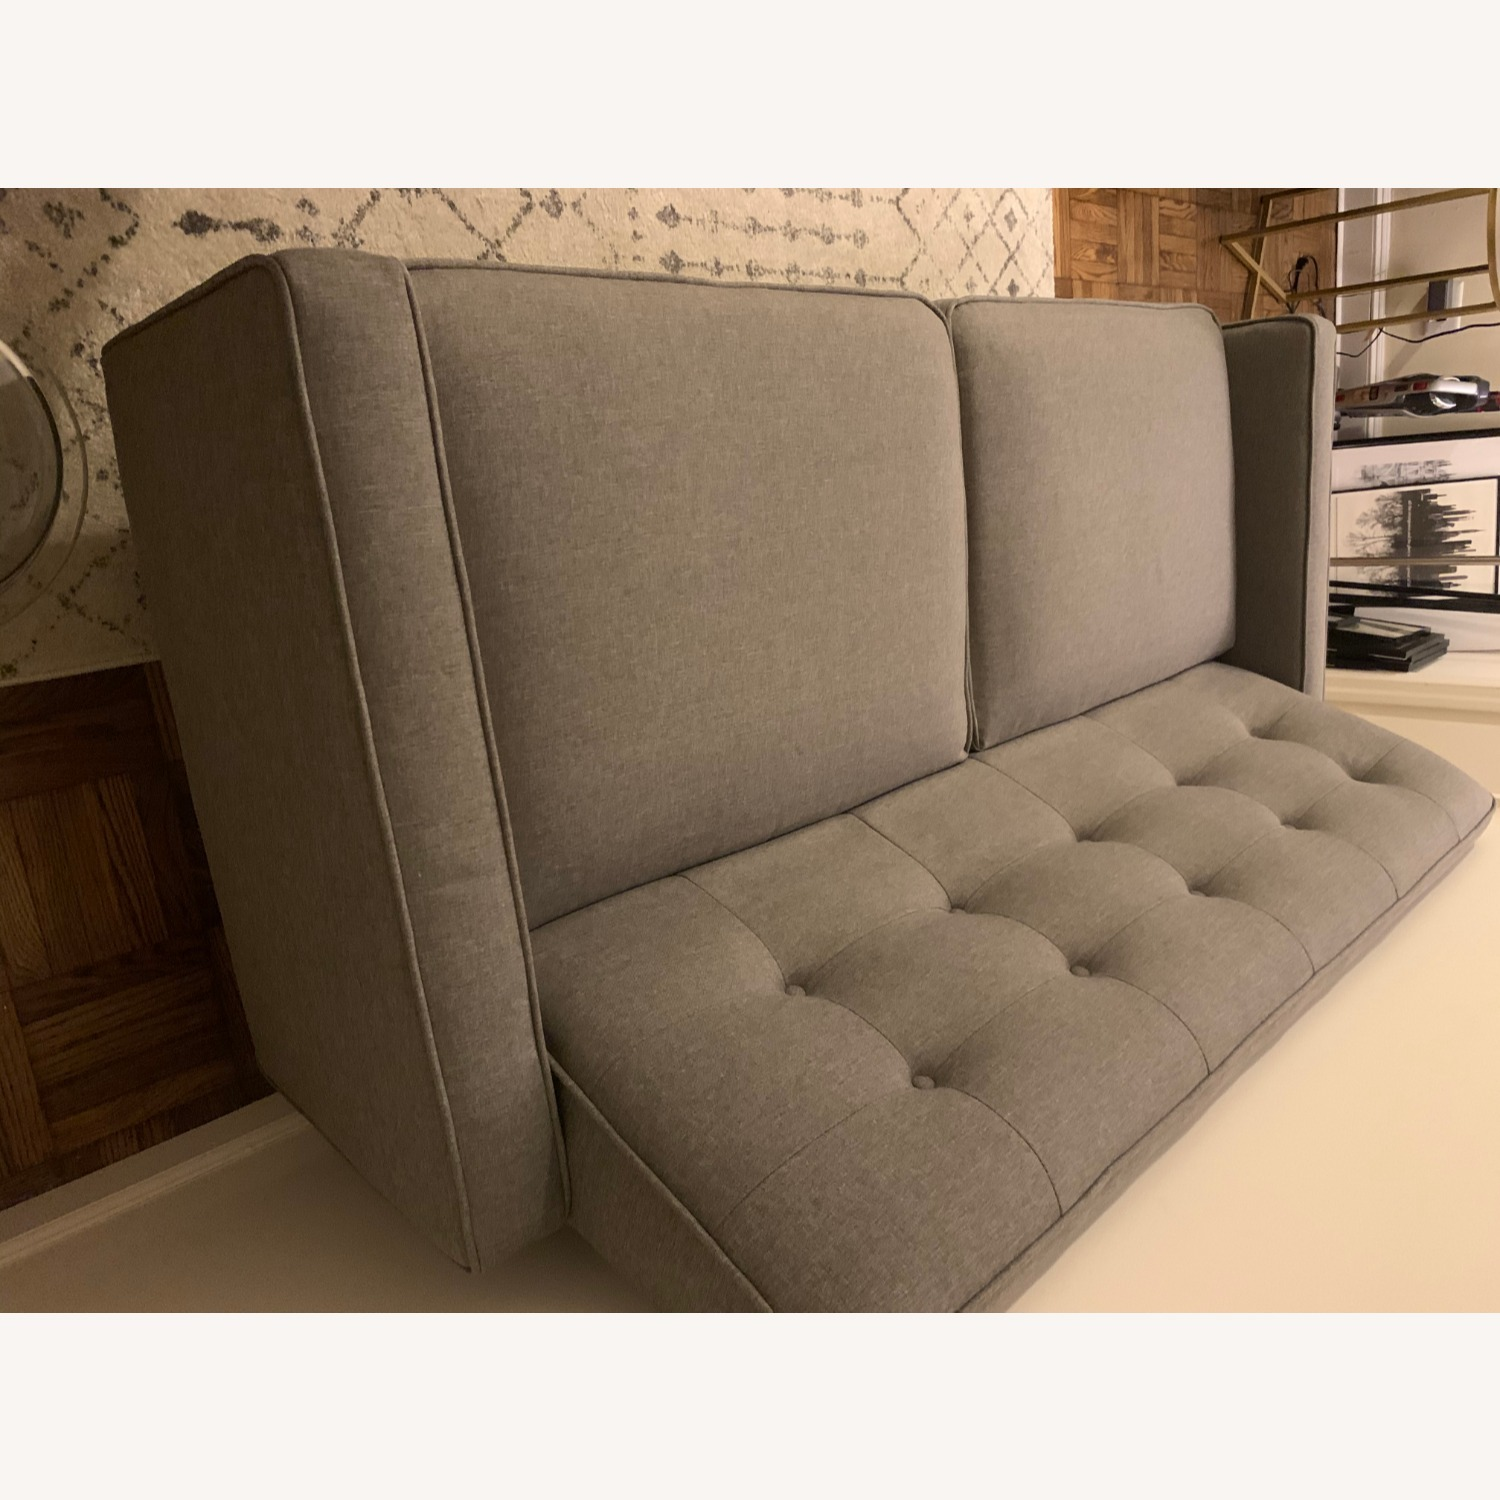 Target Largent Tufted Gray Couch - image-6